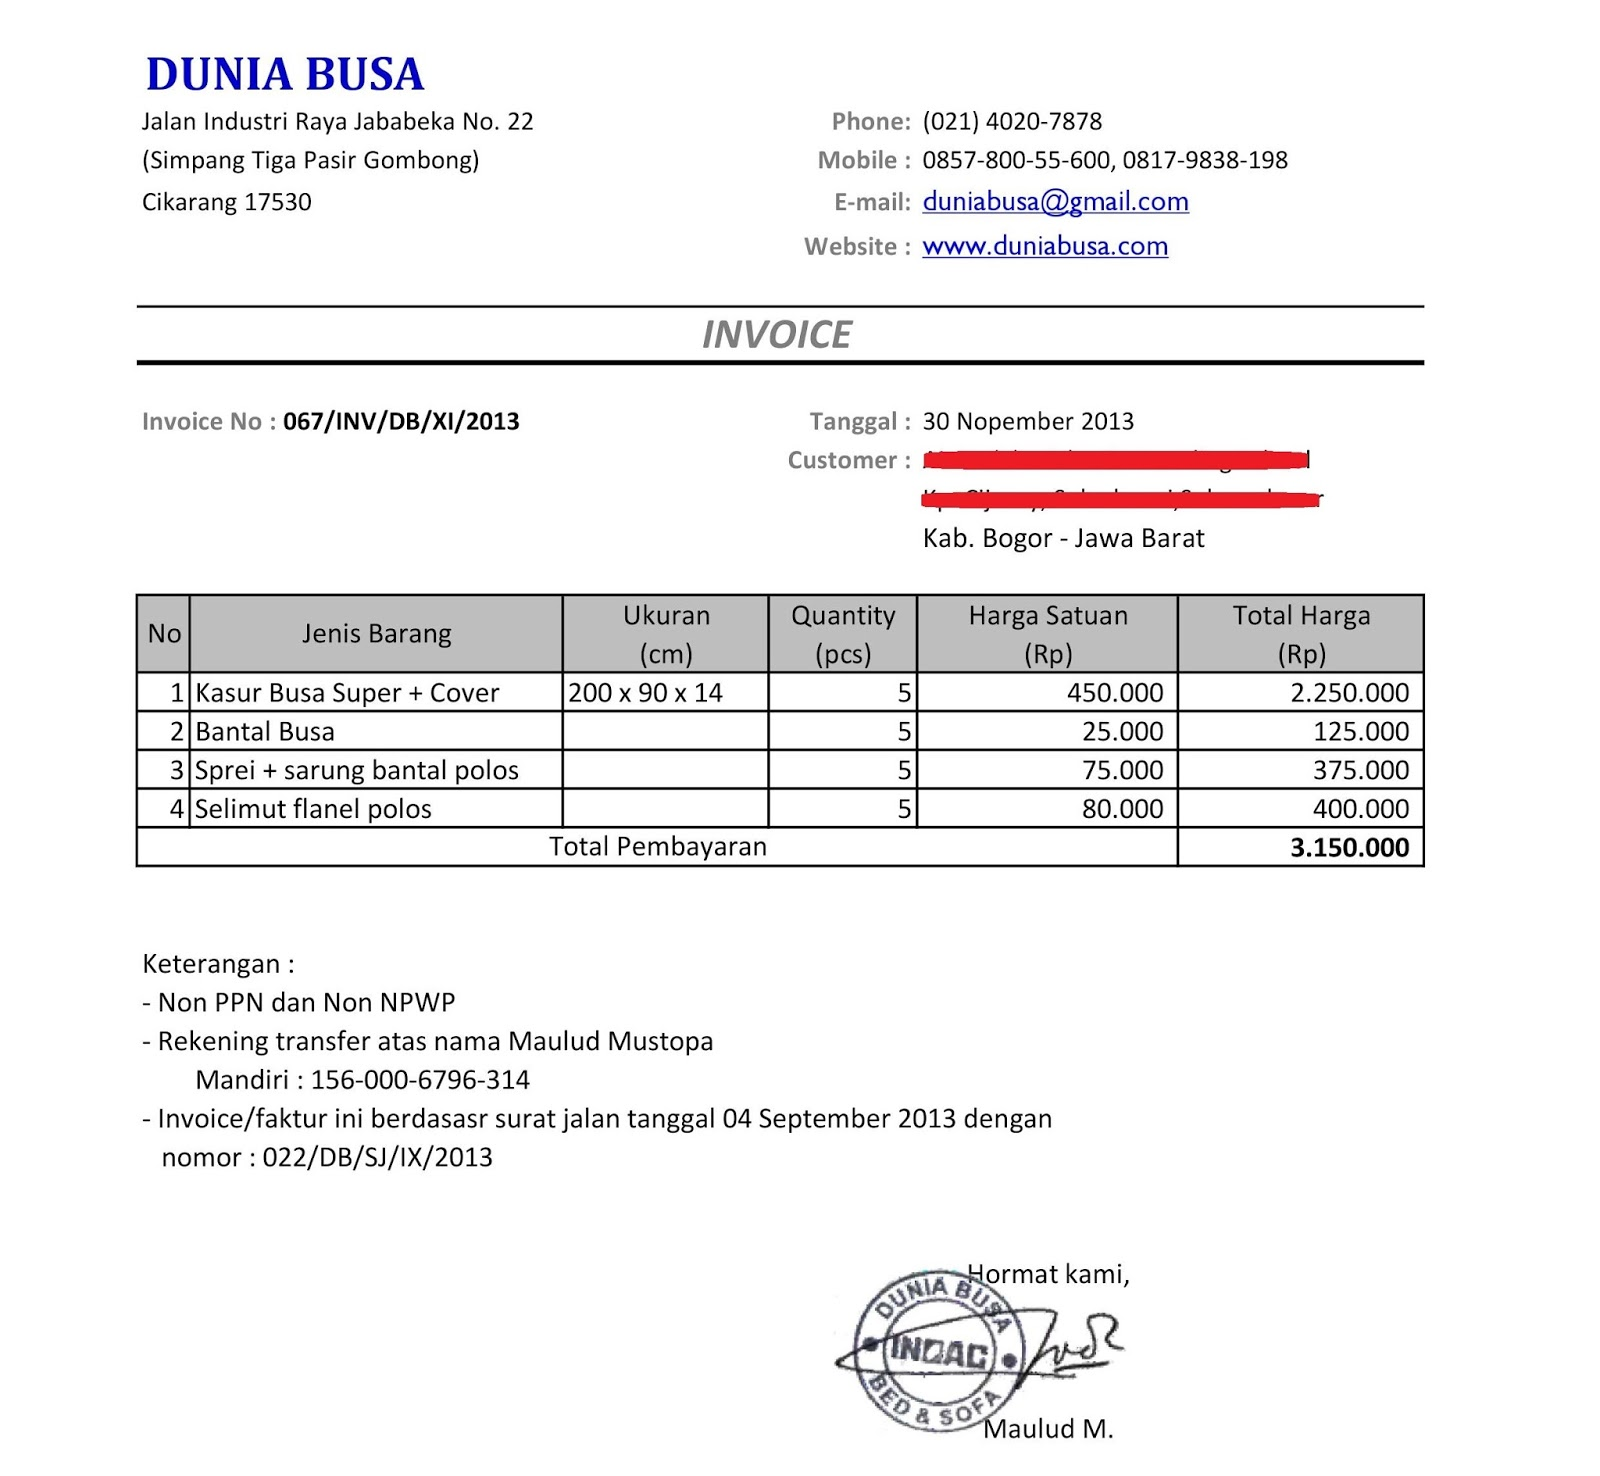 Hucareus  Outstanding Free Invoice Online  Create Invoice Online  Invoice Template  With Exciting Contoh Format Invoice Atau Surat Tagihan  Brankas Arsip  Free Invoice Online With Divine Making An Invoice In Excel Also Free Invoice Template With Logo In Addition Example Of Invoices Templates And Late Invoice Payment As Well As Invoice For Customs Purposes Only Additionally What Is An Invoice Payment From Sklepco With Hucareus  Exciting Free Invoice Online  Create Invoice Online  Invoice Template  With Divine Contoh Format Invoice Atau Surat Tagihan  Brankas Arsip  Free Invoice Online And Outstanding Making An Invoice In Excel Also Free Invoice Template With Logo In Addition Example Of Invoices Templates From Sklepco